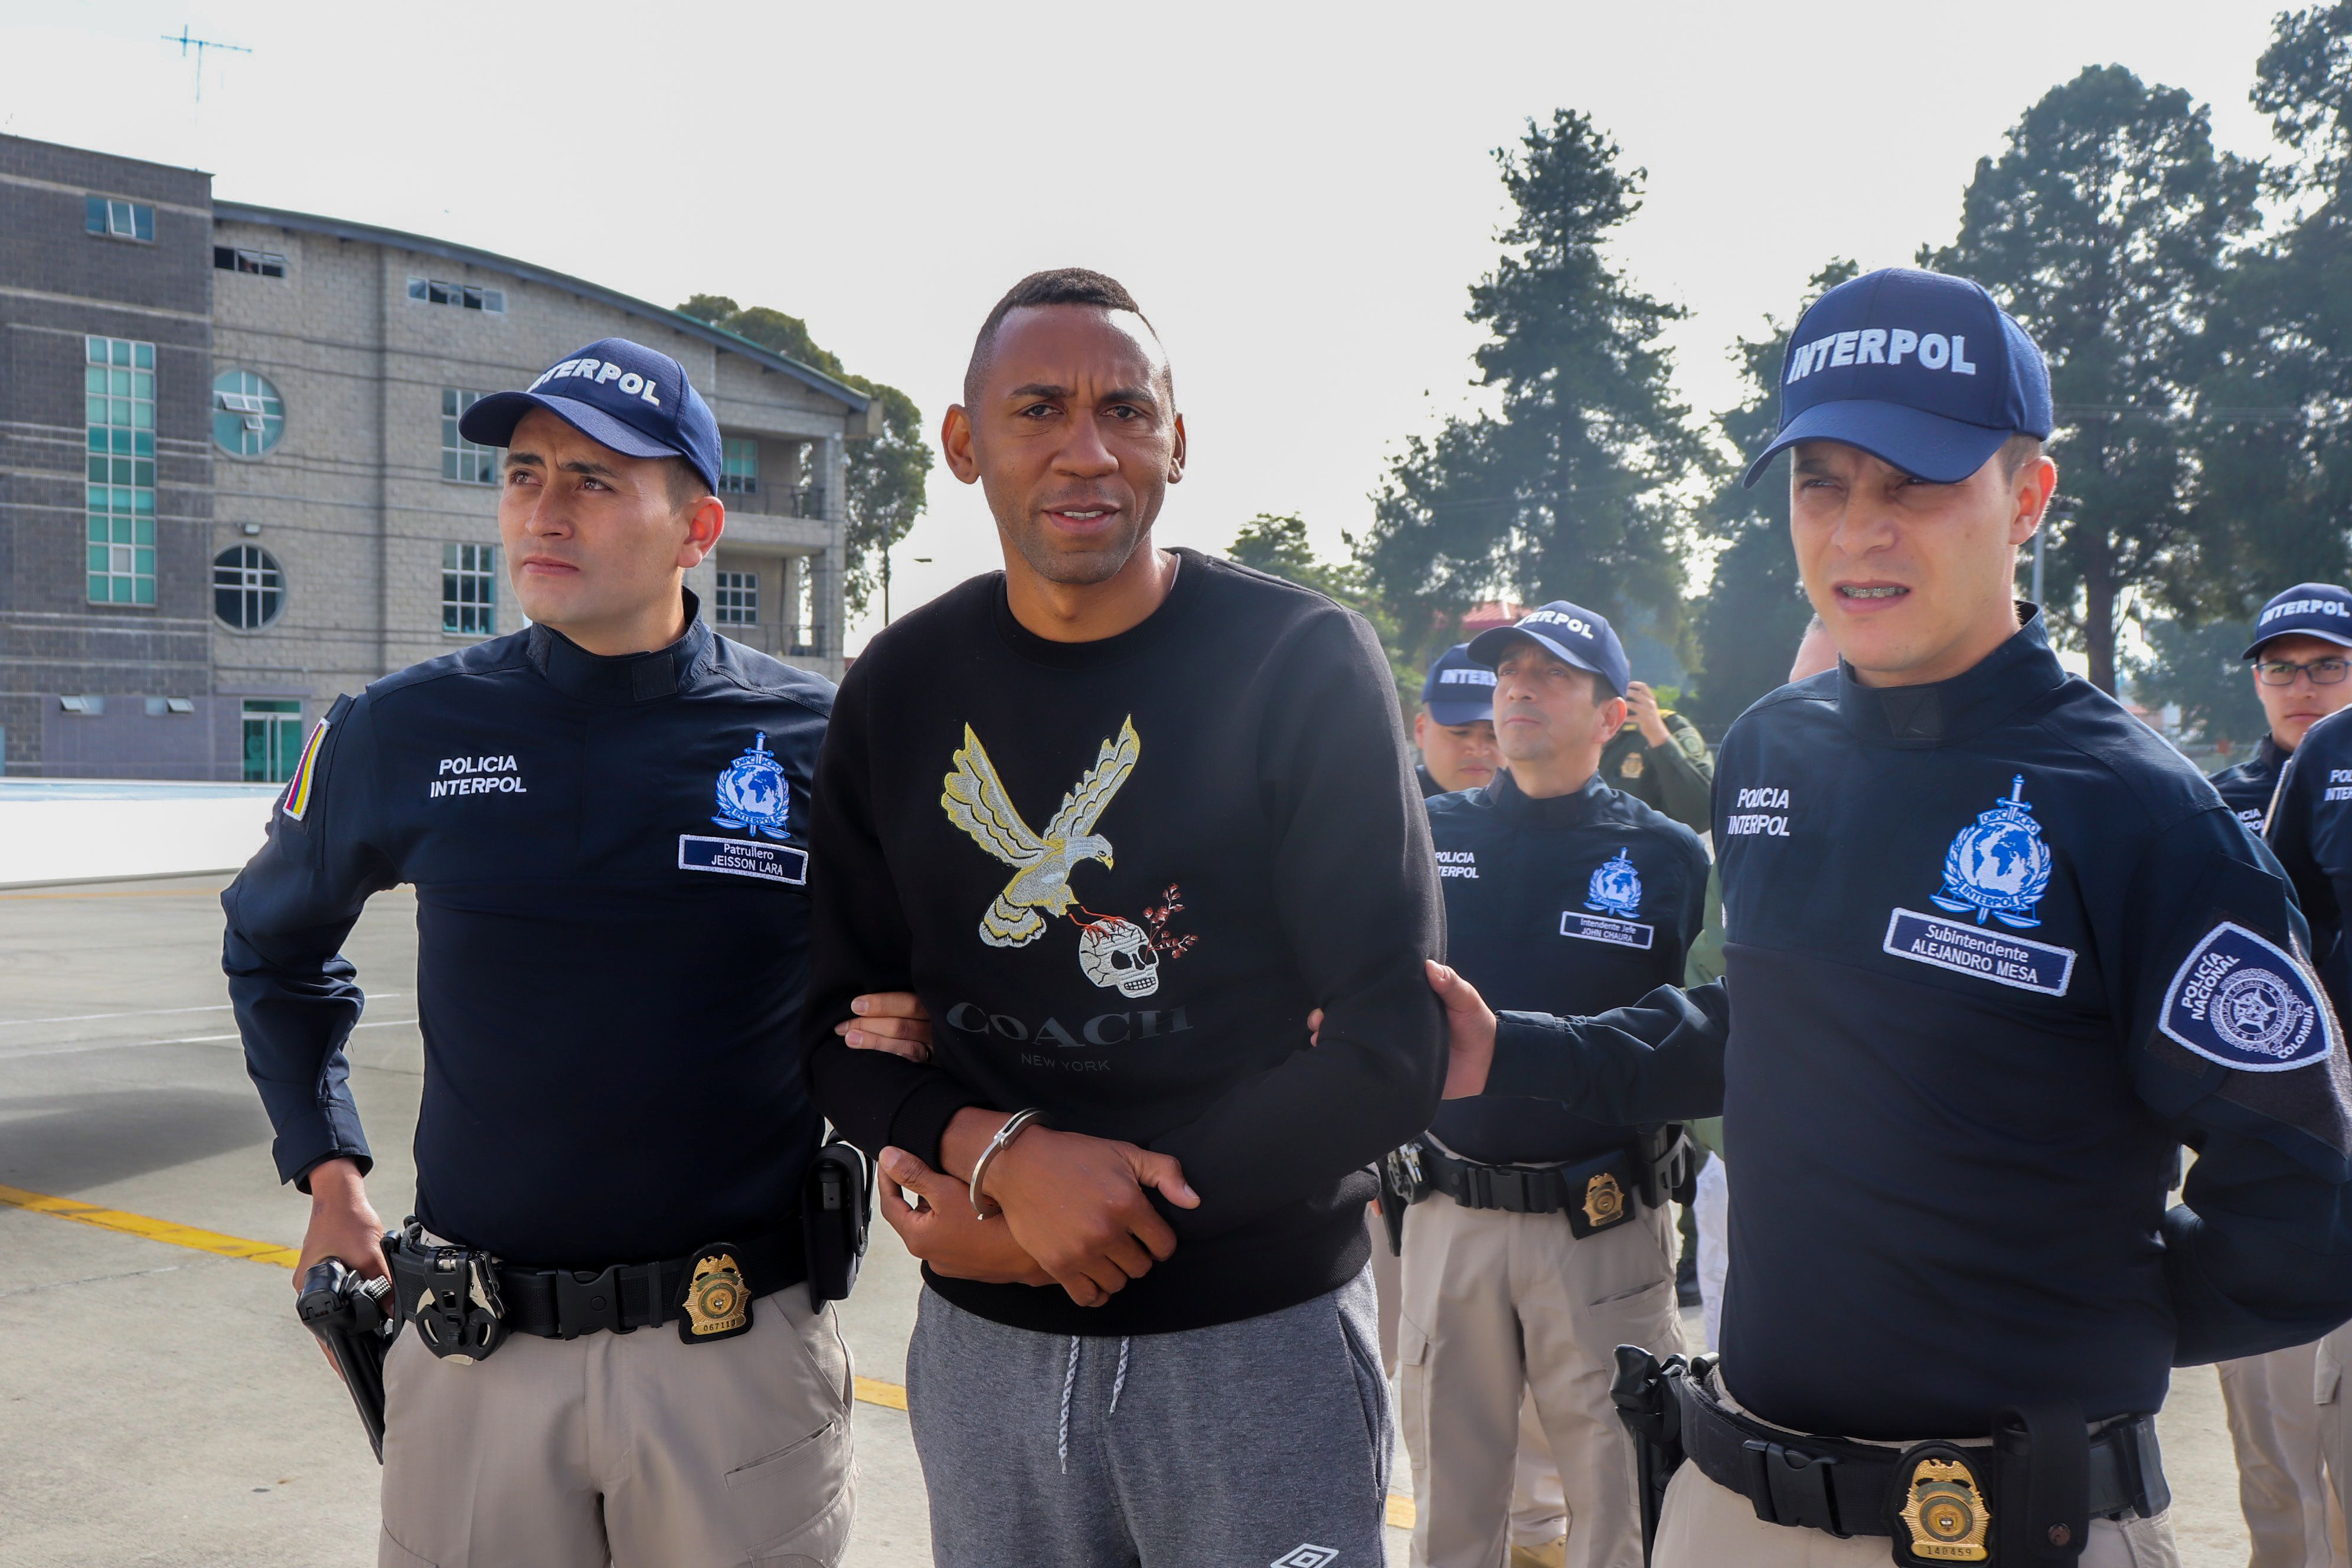 Colombia's former soccer player Jhon Viafara, is escorted by the police, before being extradited to the U.S., to answer for alleged drug trafficking crimes, at an airport in an anti-narcotics base in Bogota, Colombia January 23, 2020. Colombian Police/Handout via REUTERS ATTENTION EDITORS - THIS IMAGE WAS PROVIDED BY A THIRD PARTY